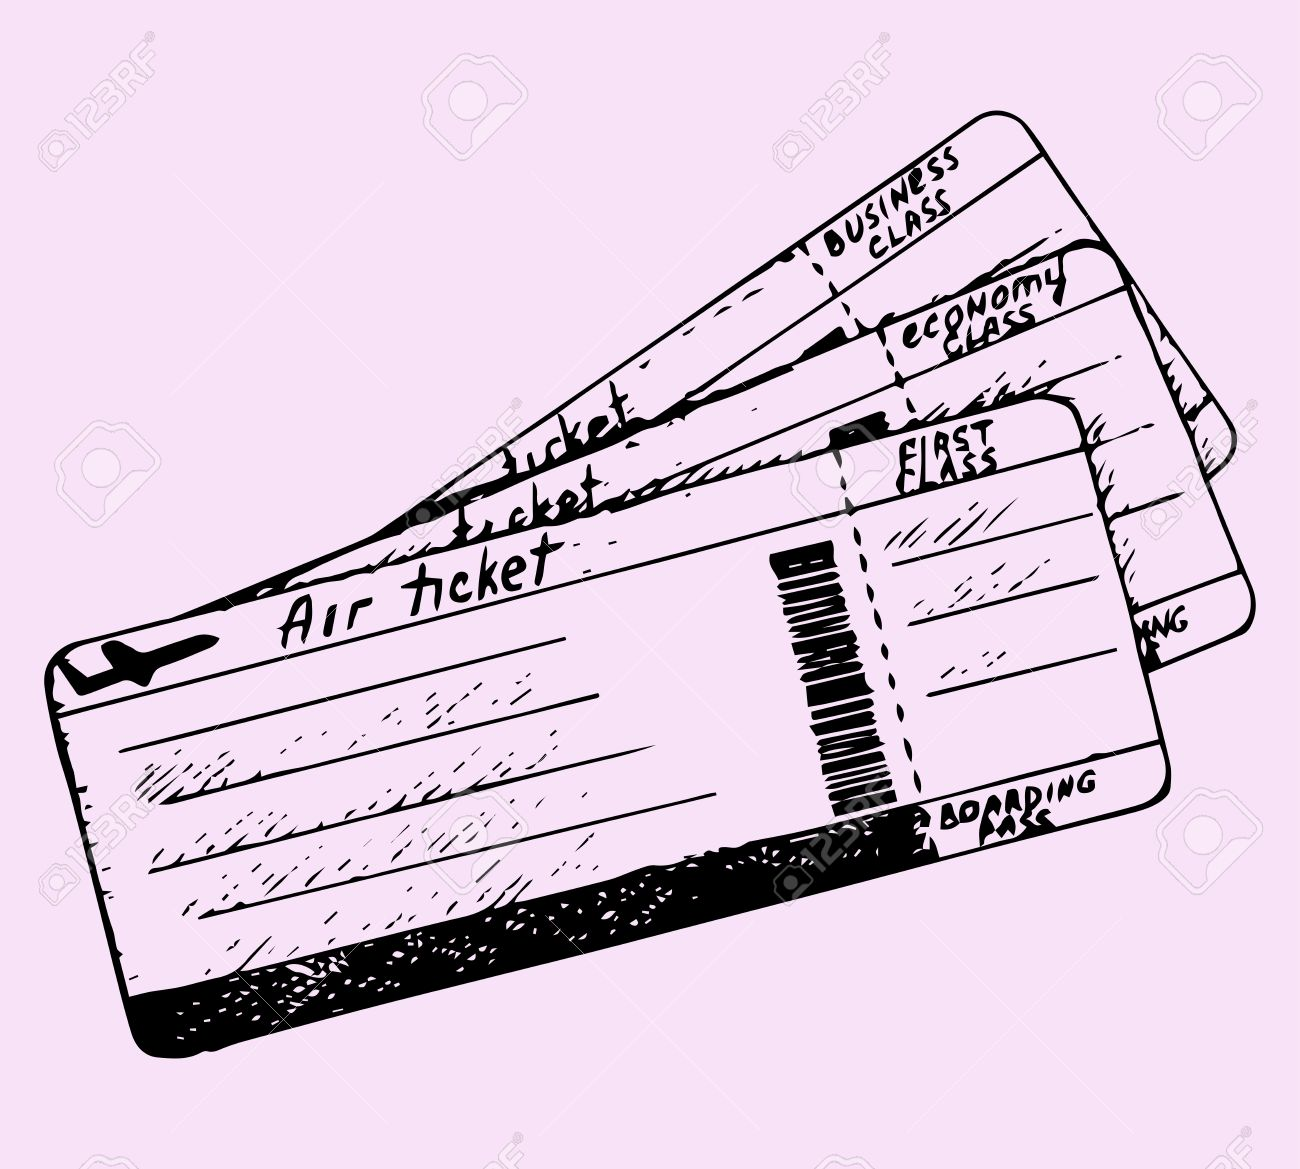 air ticket, doodle style, sketch illustration - 50128446